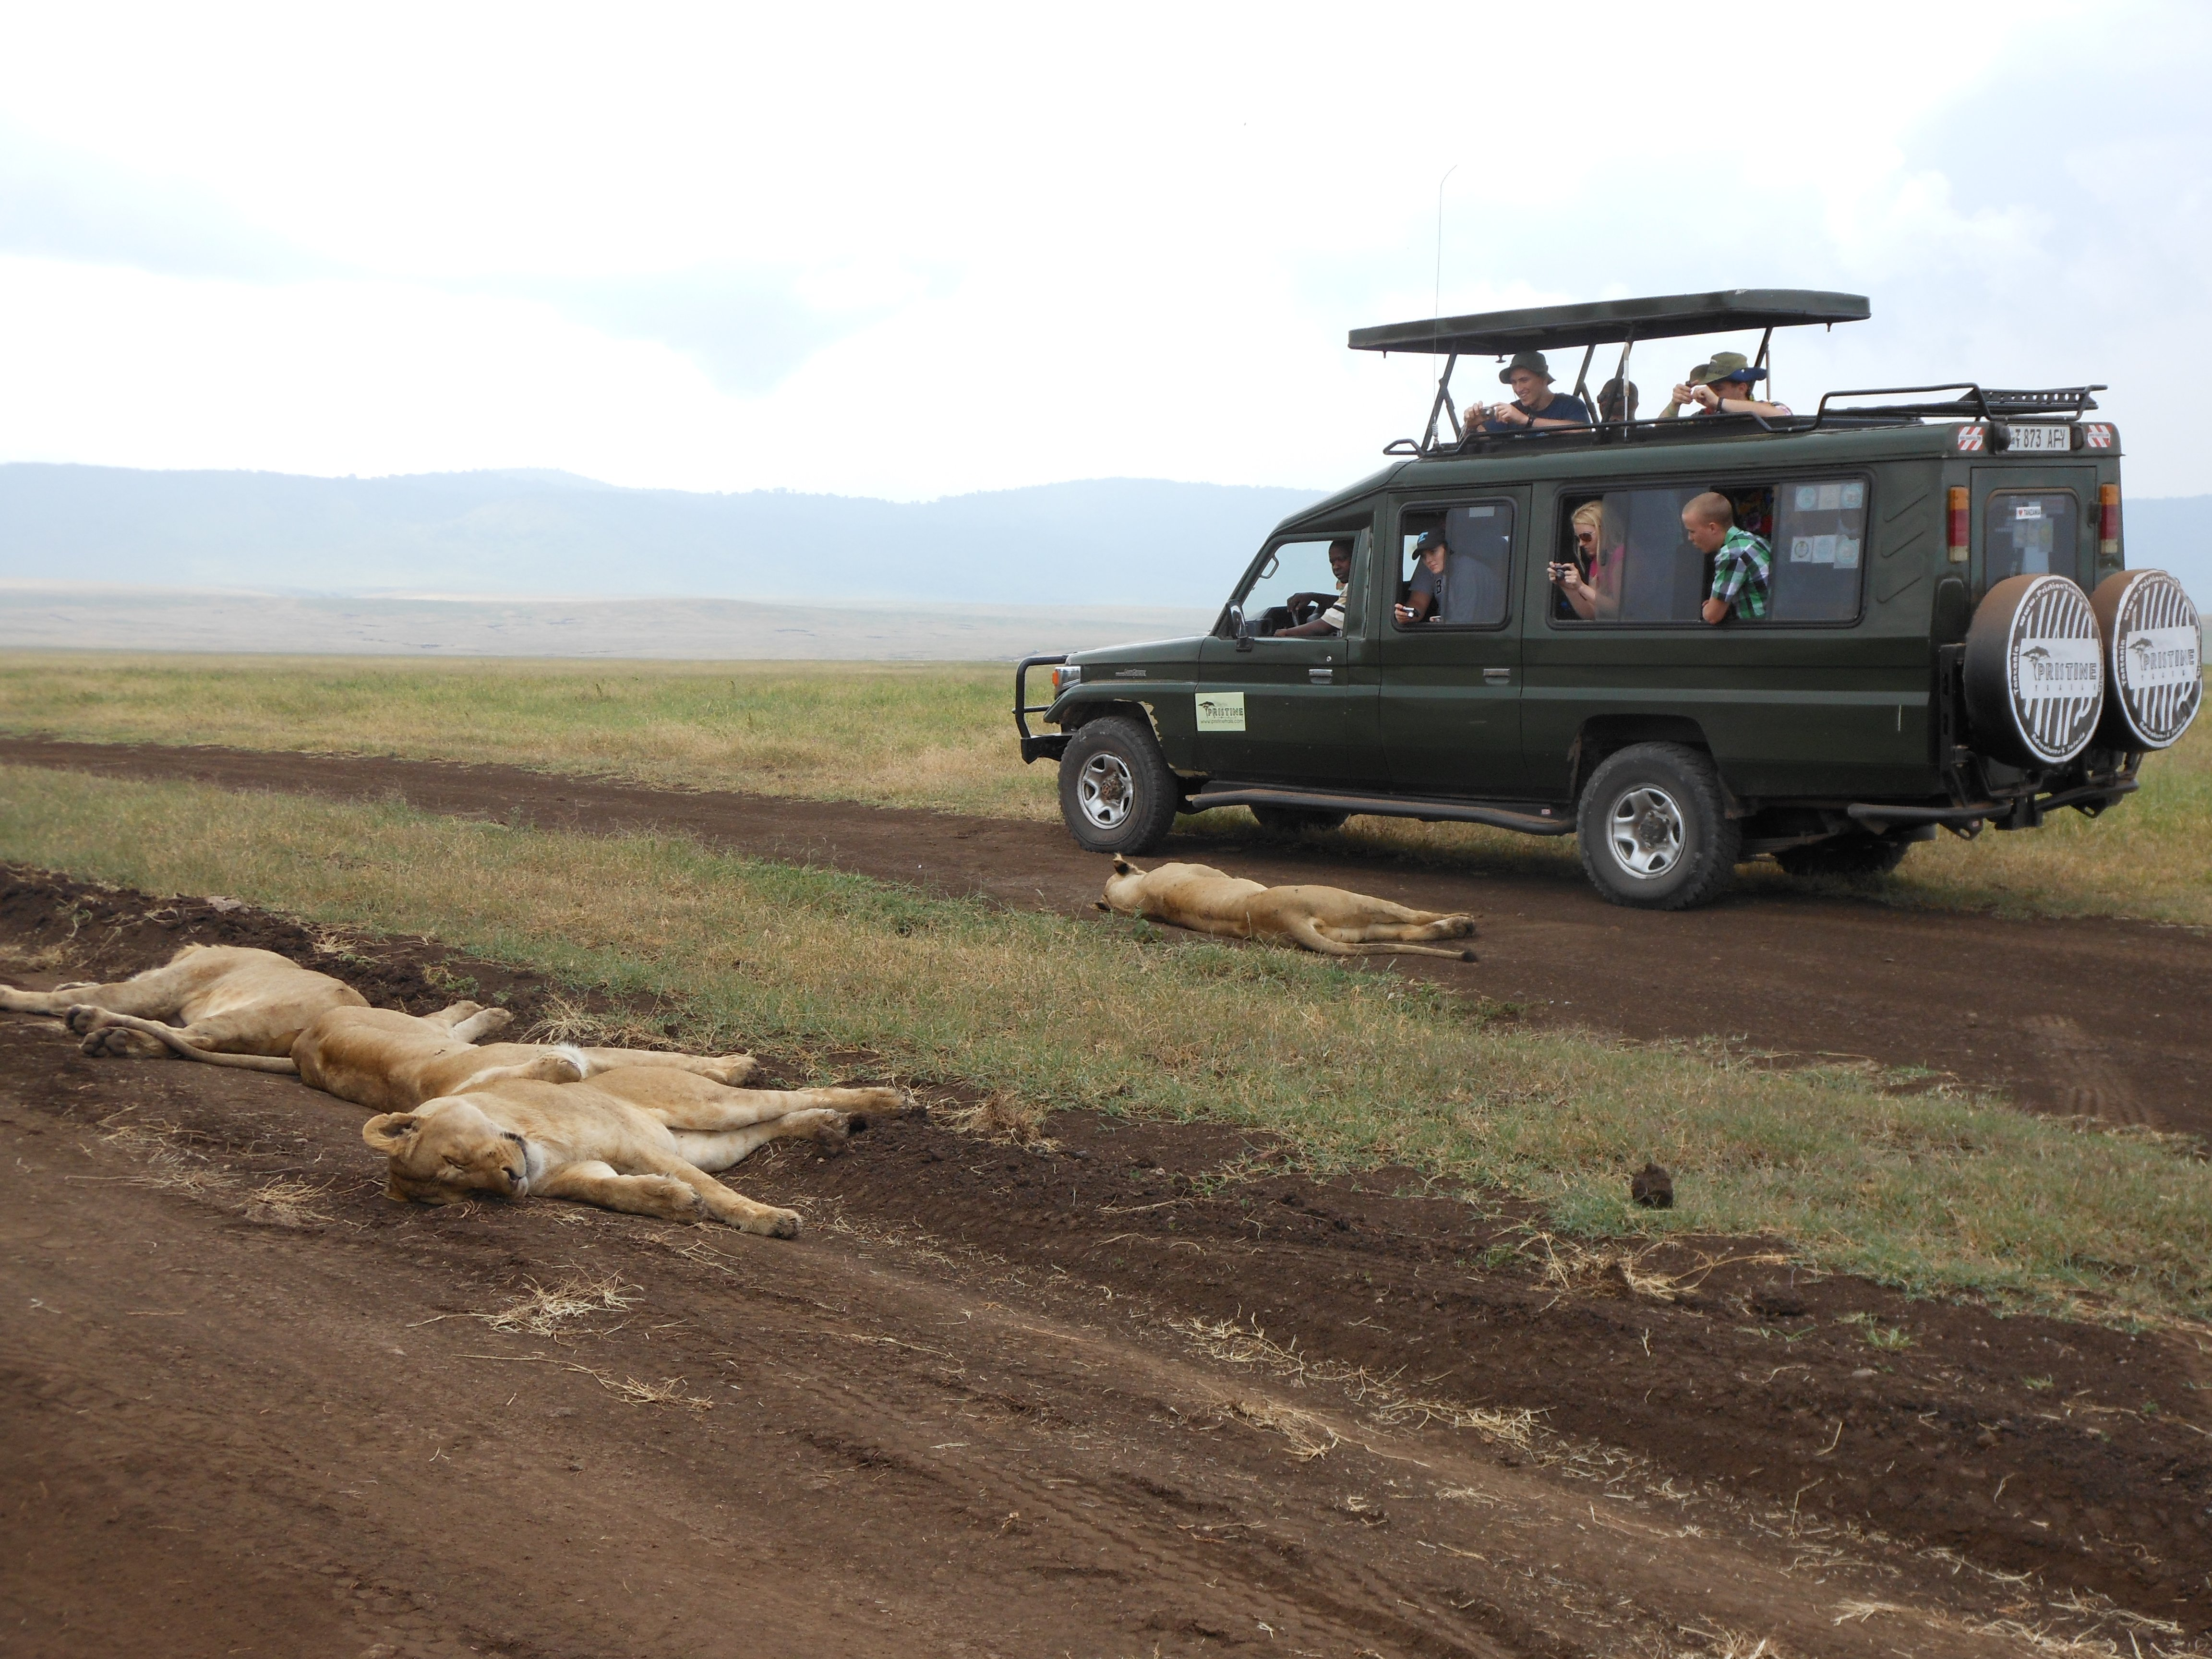 best_safari_in_tanzania.JPG - description